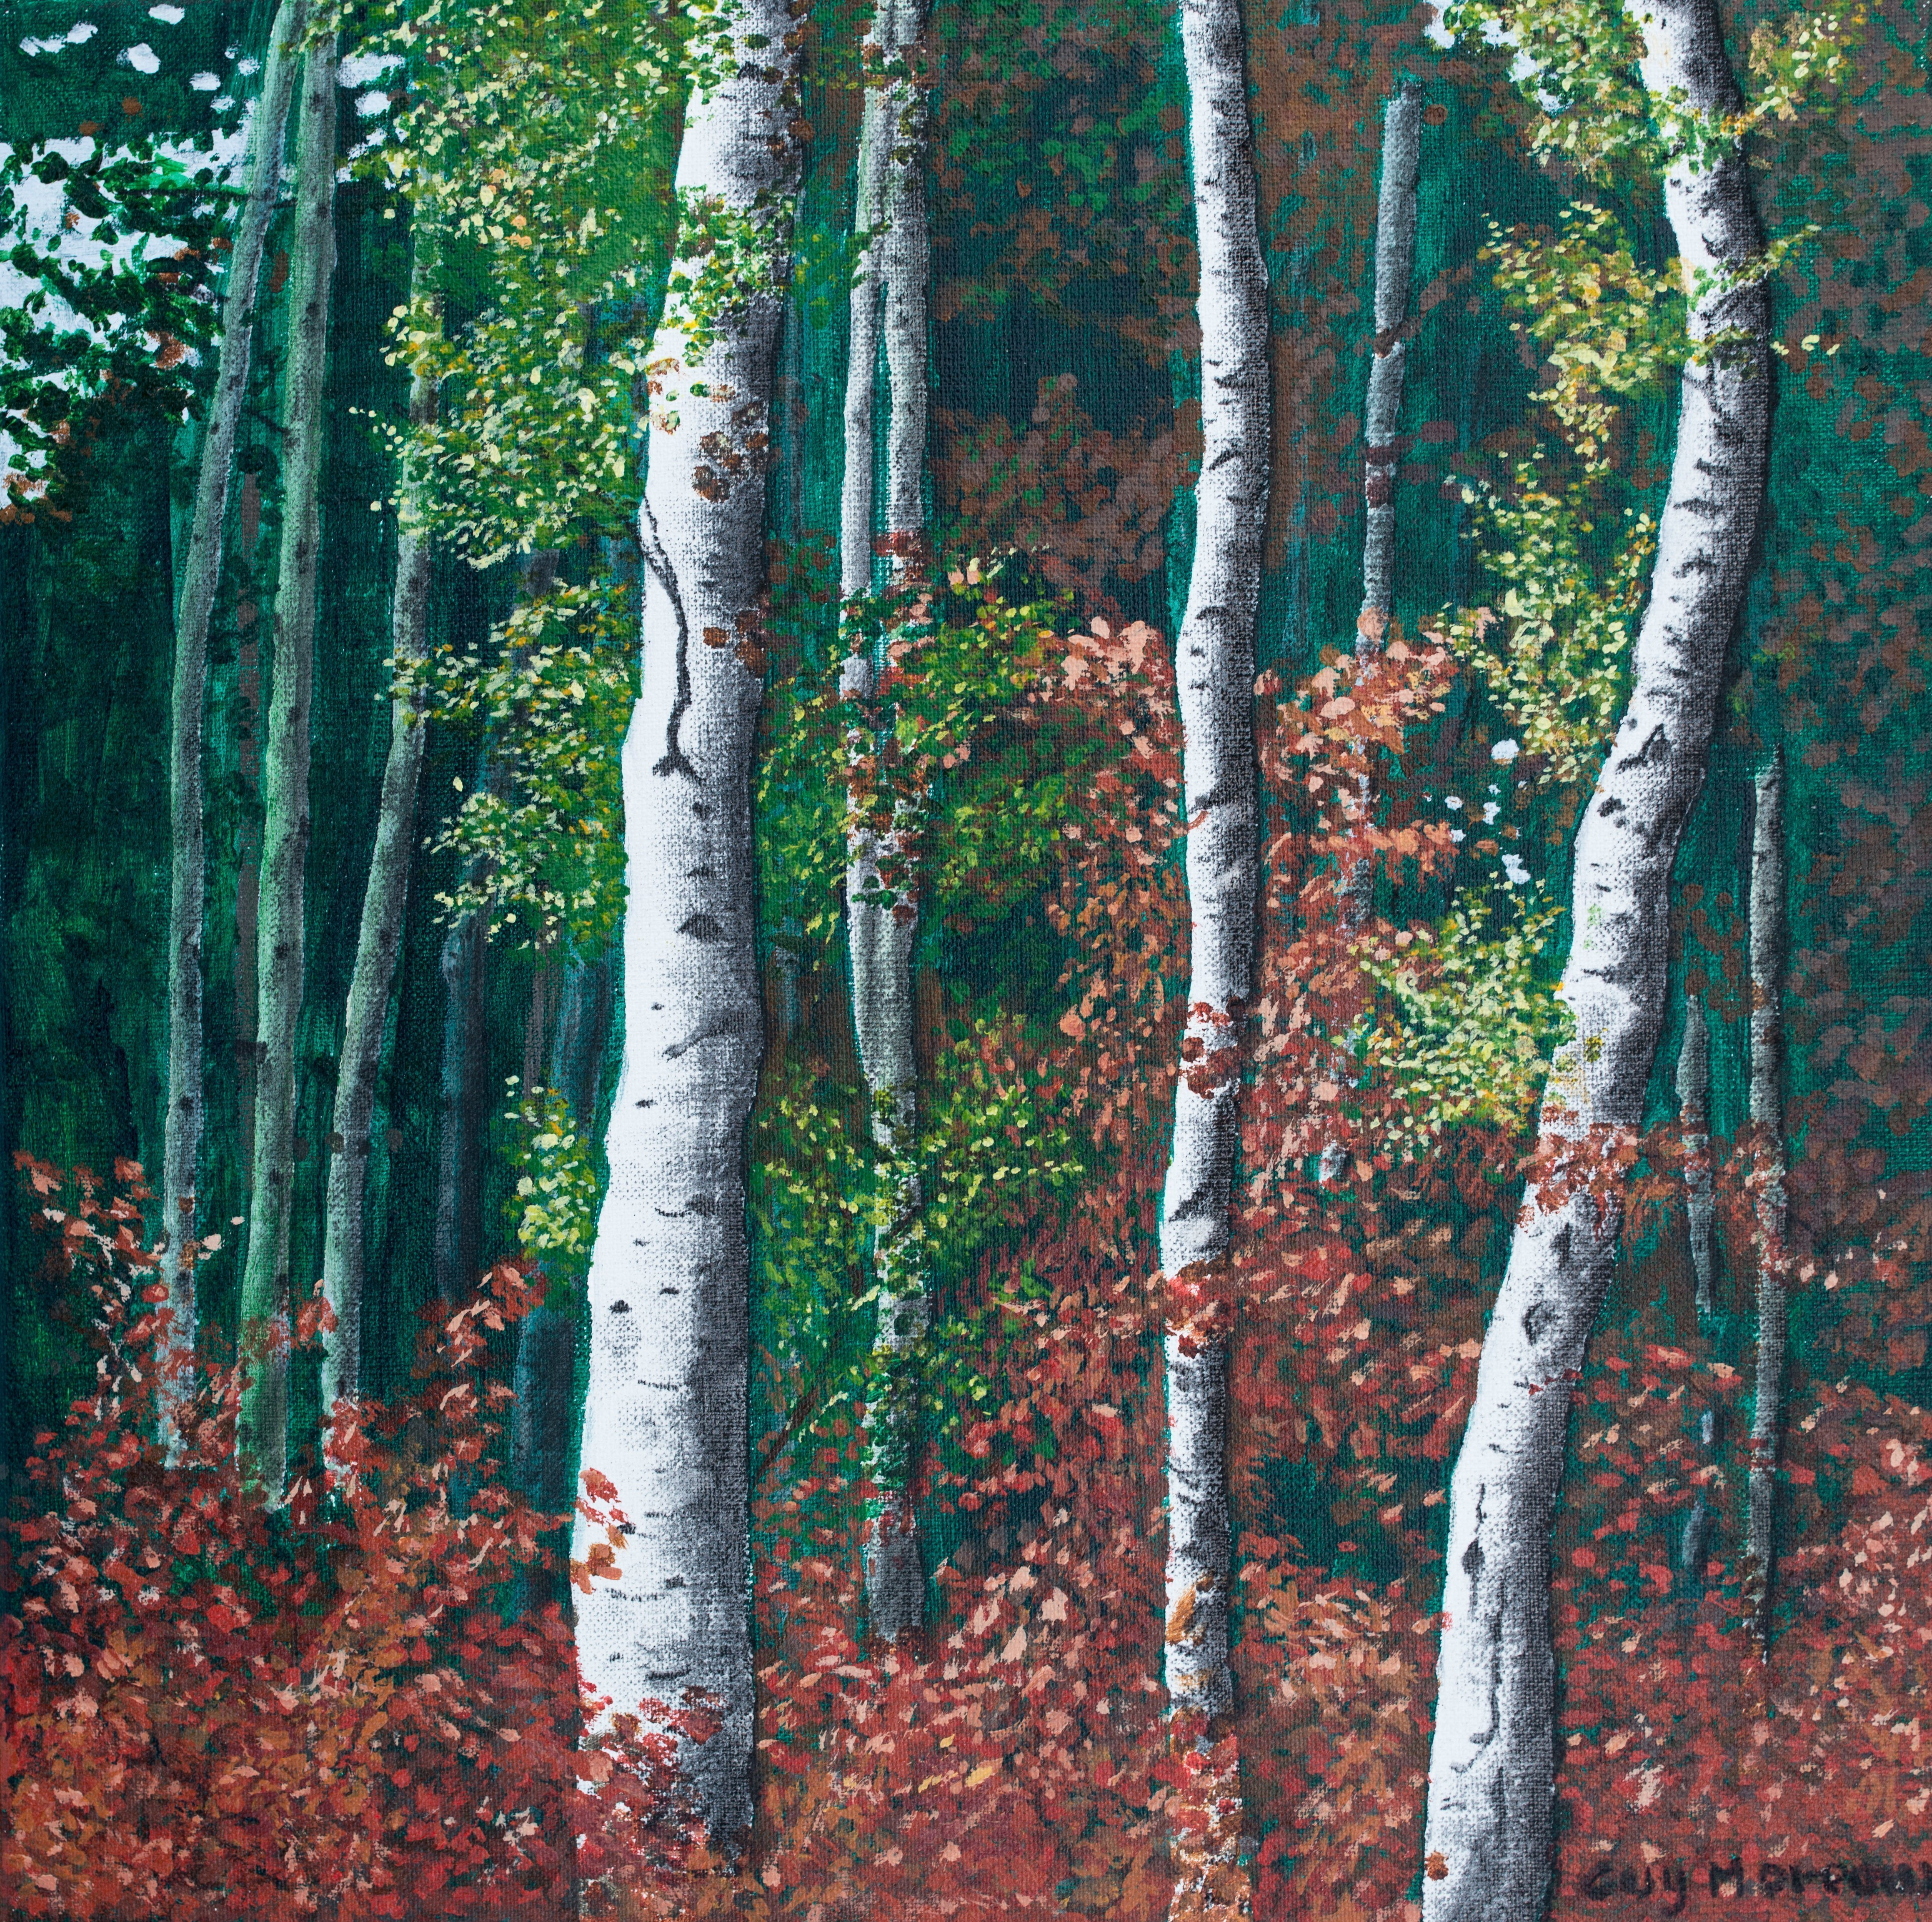 Guy Octaaf Moreaux: 'early autumn in limburg', 2017 Acrylic Painting, nature. Acrylic and carbon on linen.Nature keeps inspiring me.  Limburg province has a sand- rich soil which gives a variety of trees, pines are mixed in with others. ...